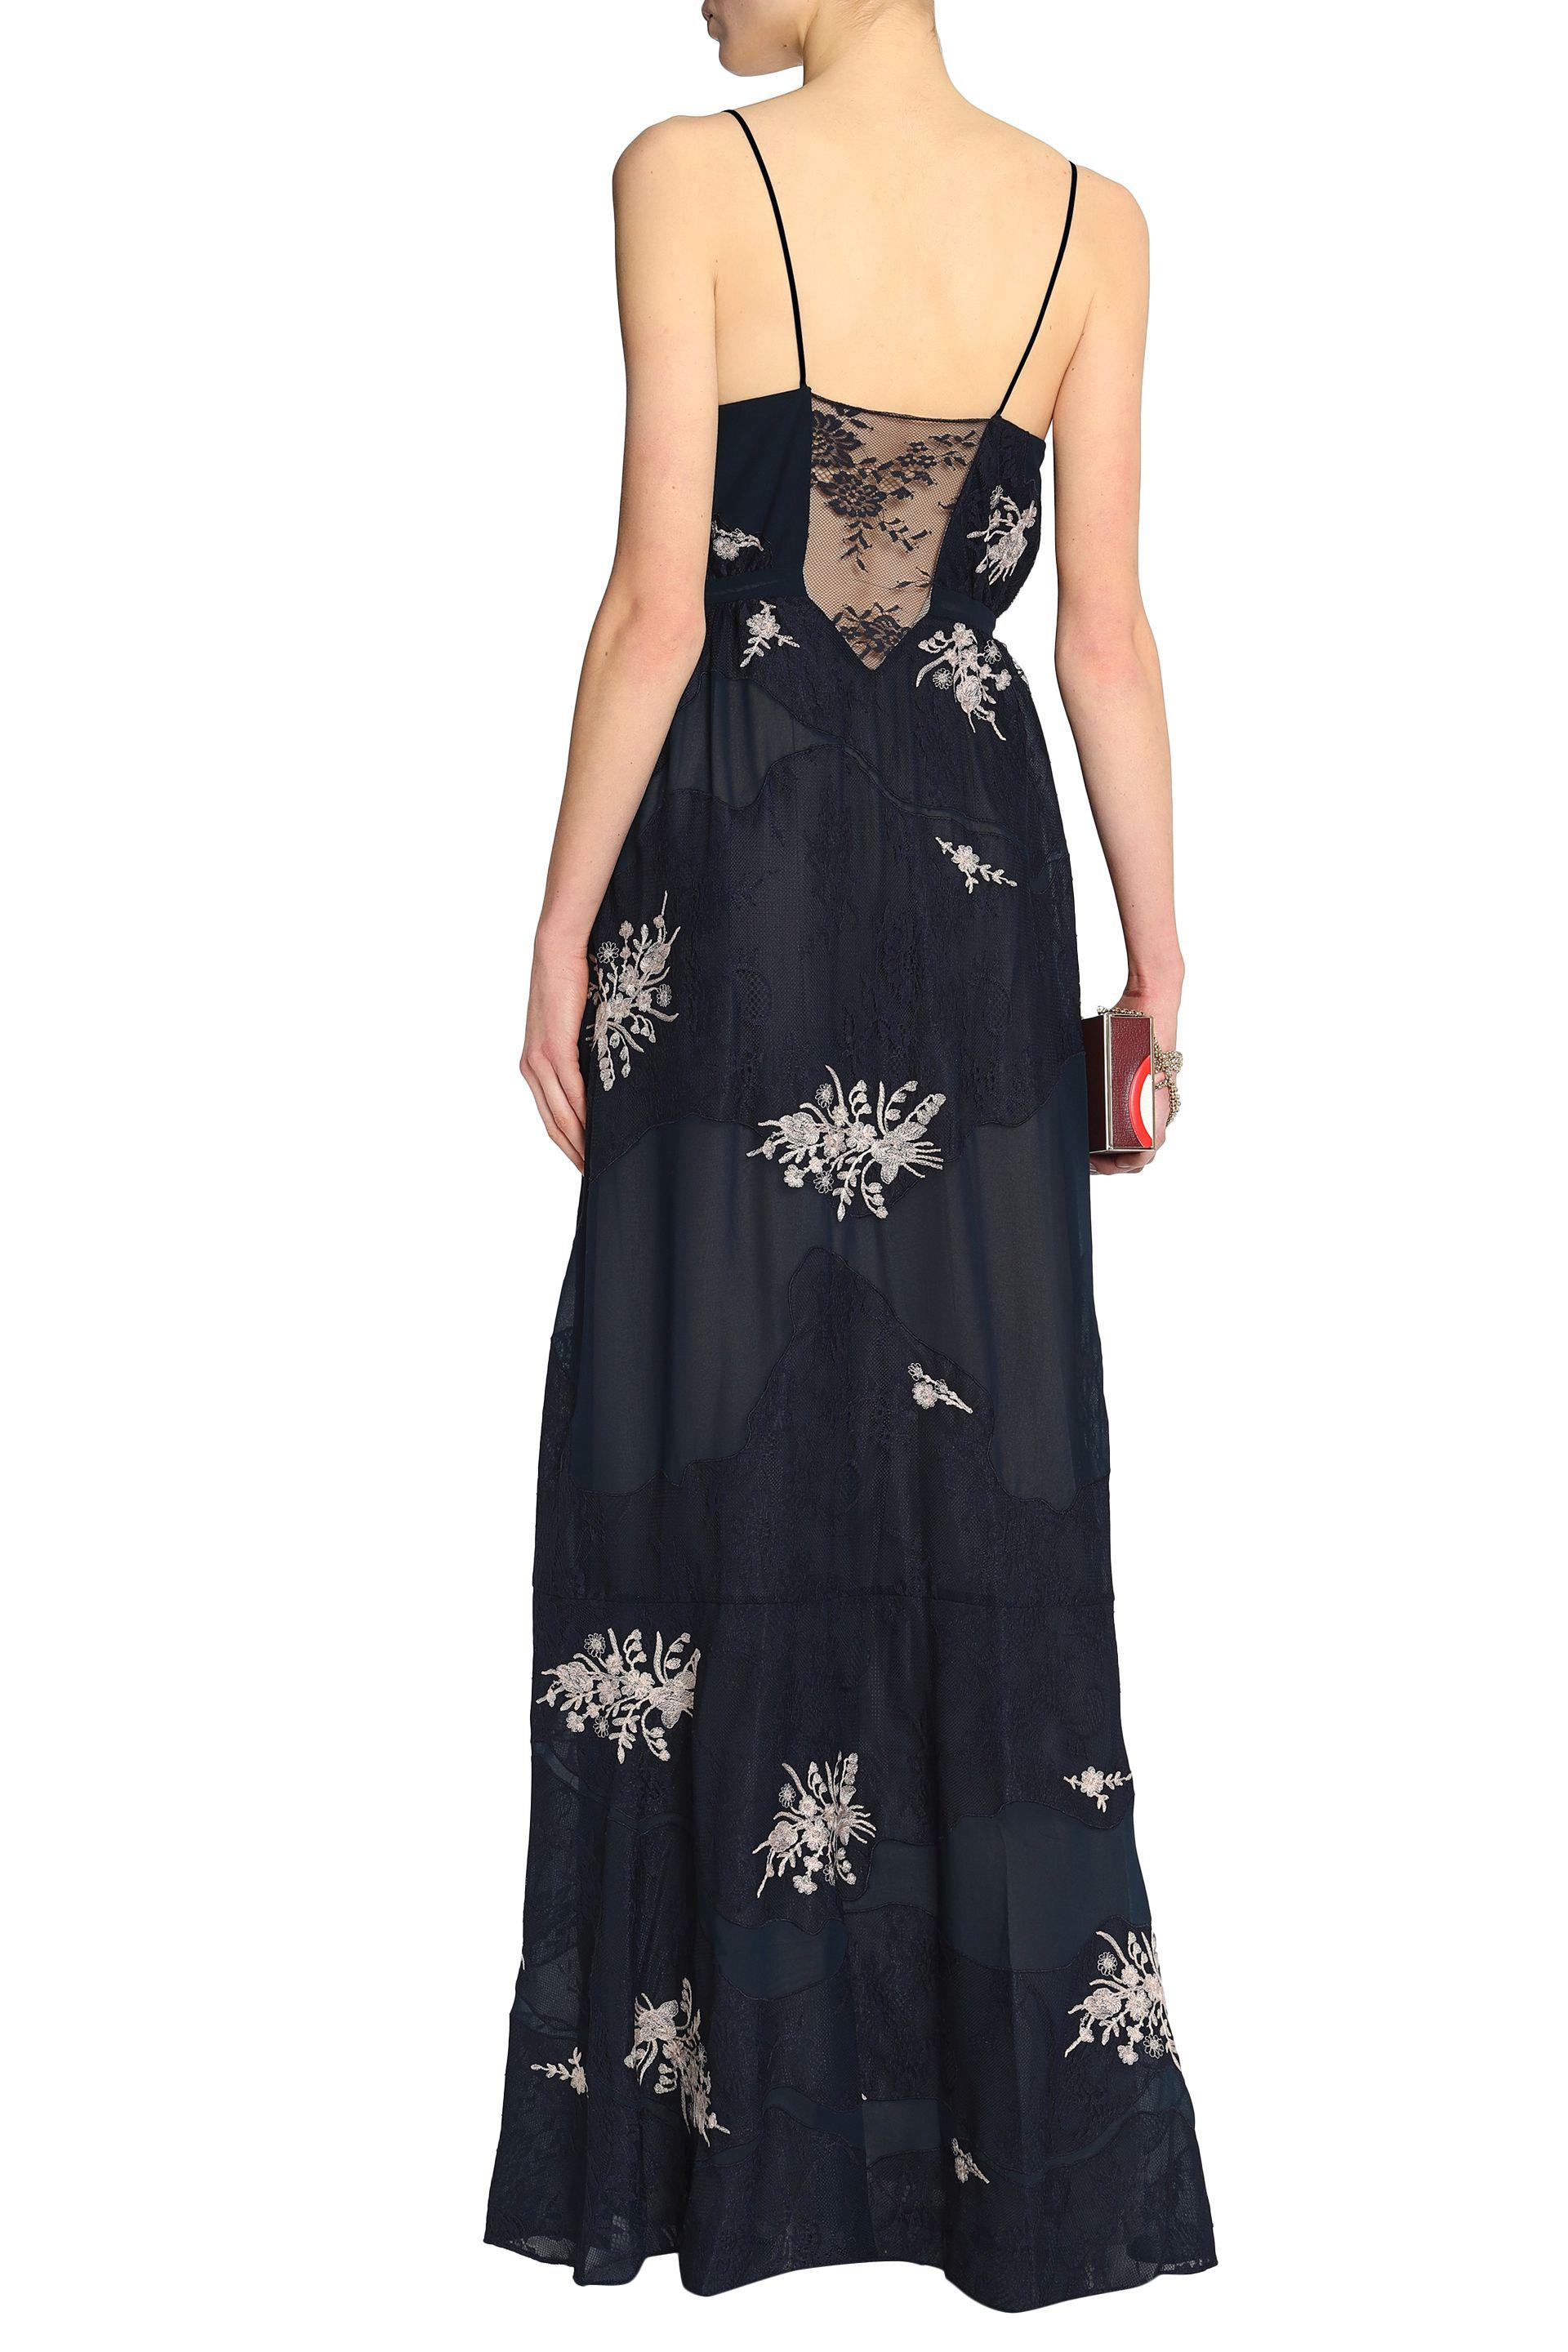 Haute Hippie Woman Embroidered Lace And Crepe De Chine Maxi Dress Midnight Blue Size 4 Haute Hippie Buy Cheap For Nice Buy Cheap Pick A Best Fast Delivery 1e68SaPMW